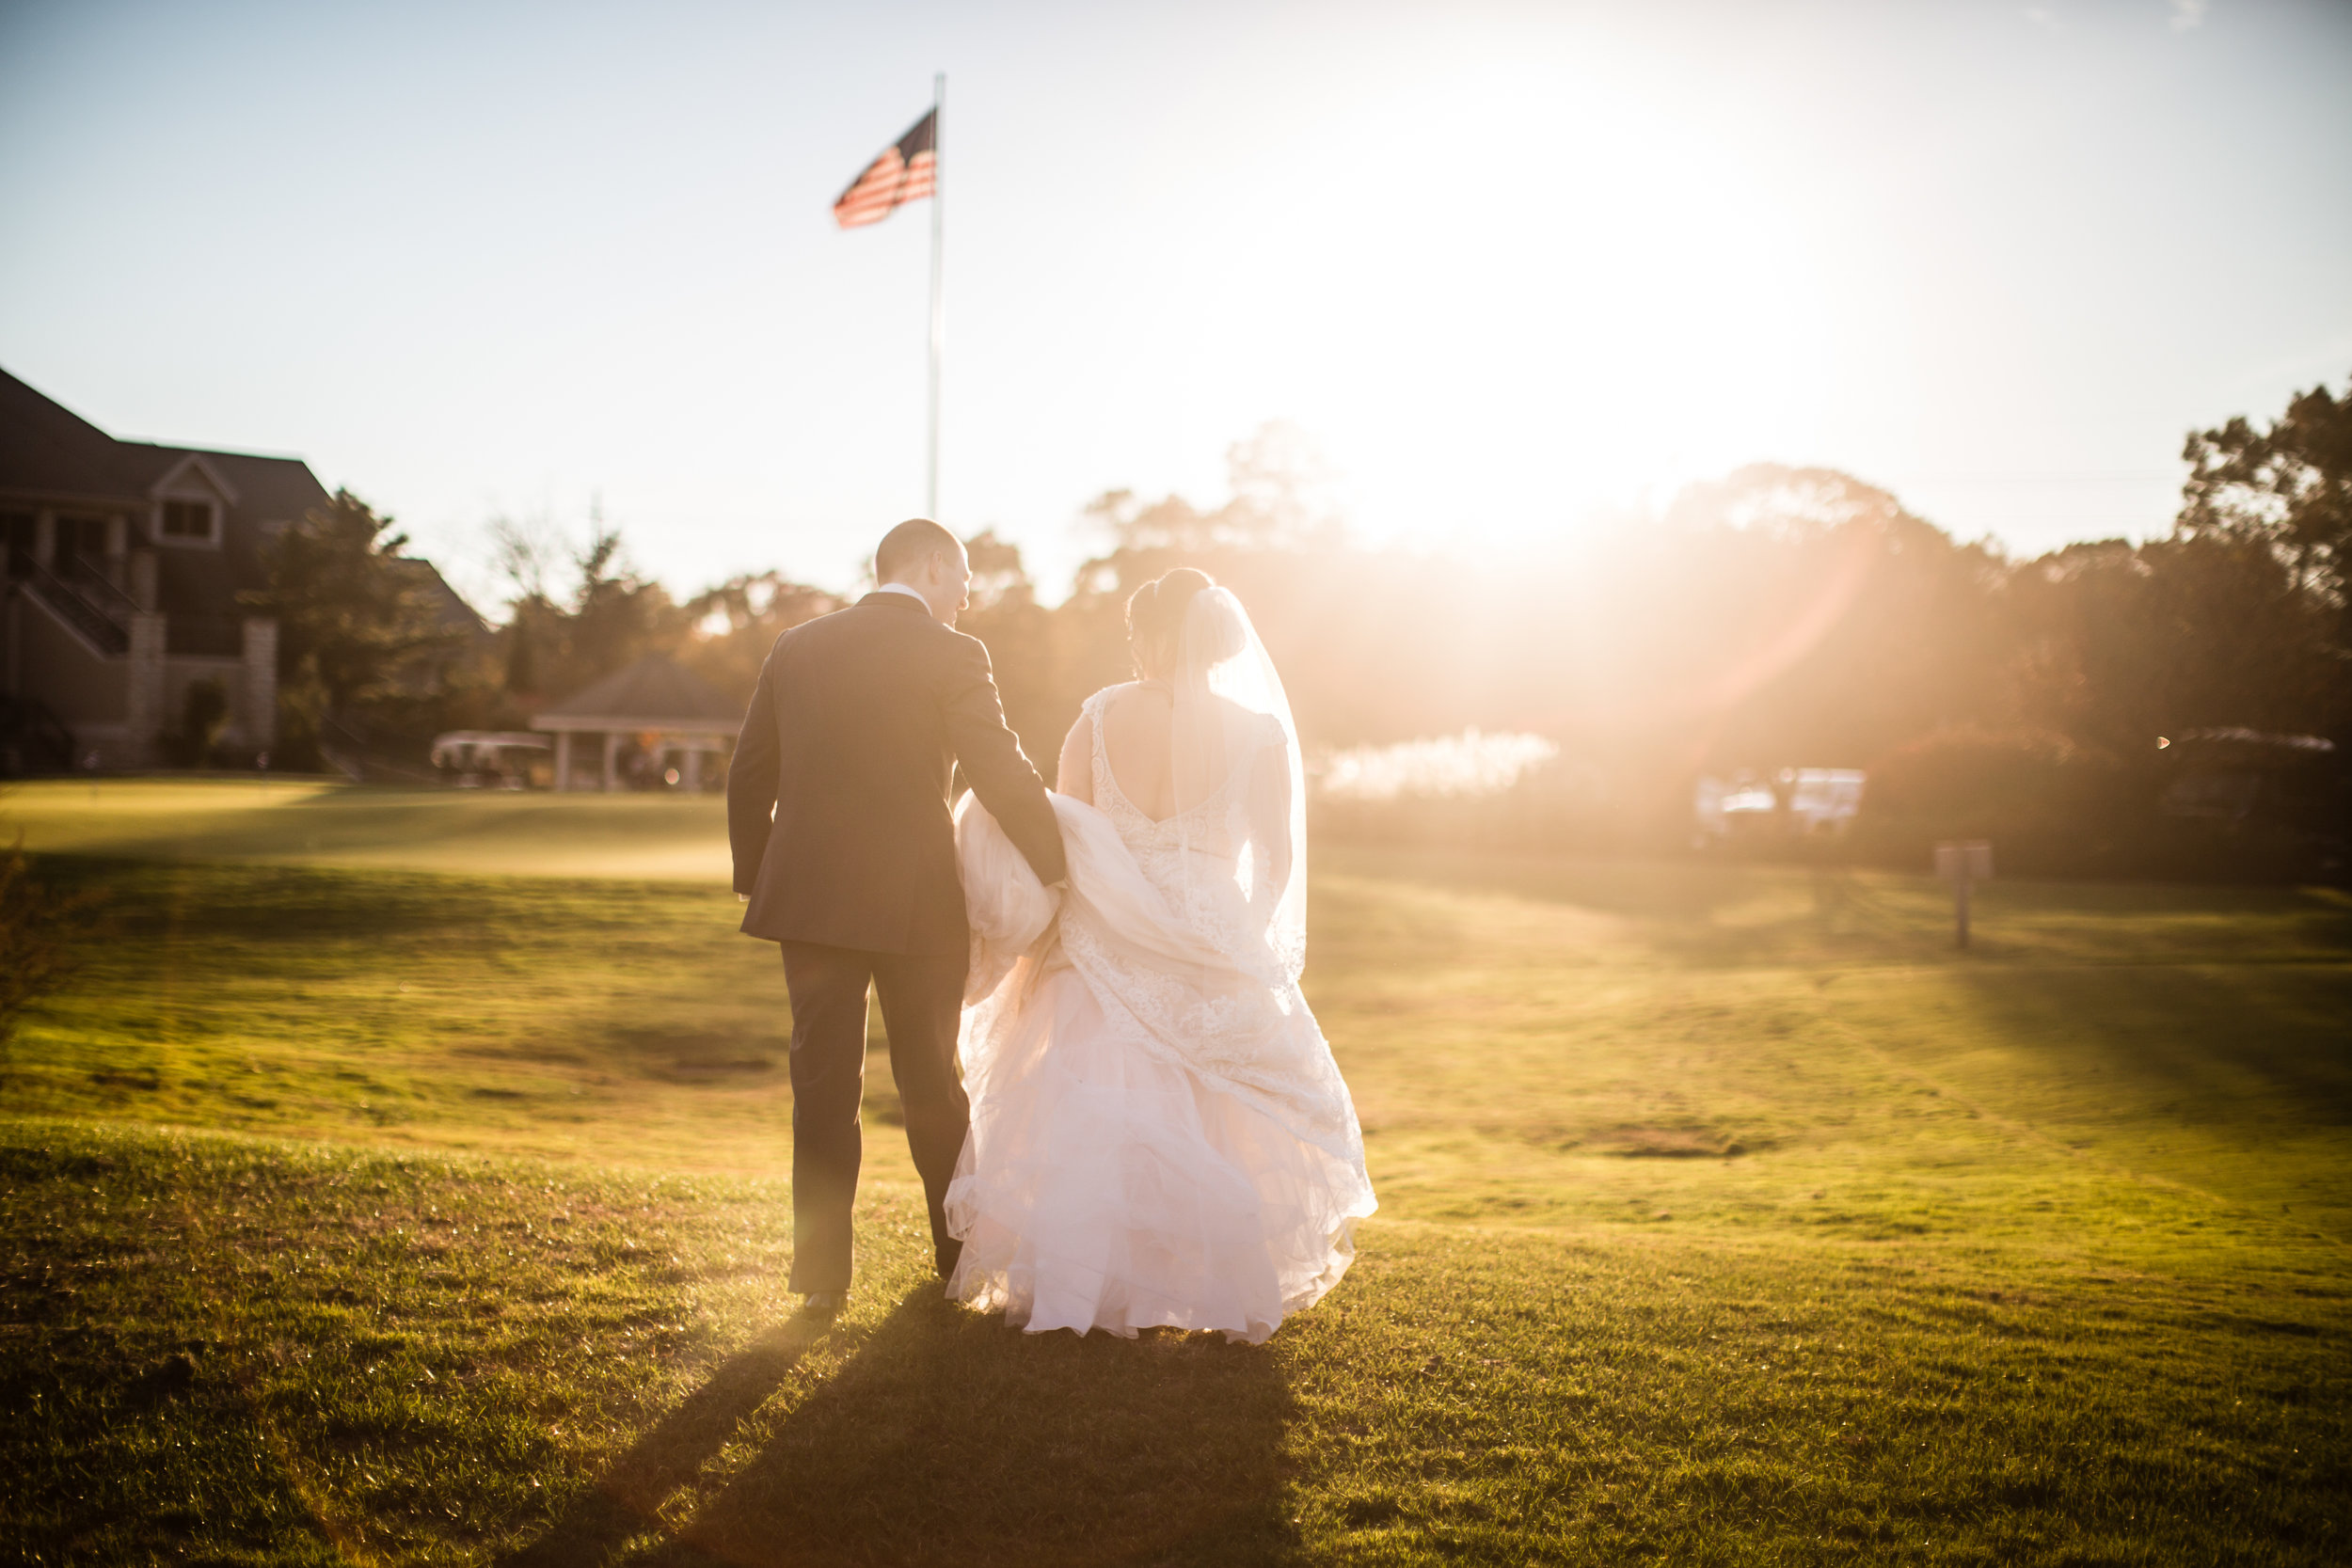 scotlandrunweddingfallsouthjerseyweddingphotographer-20.jpg